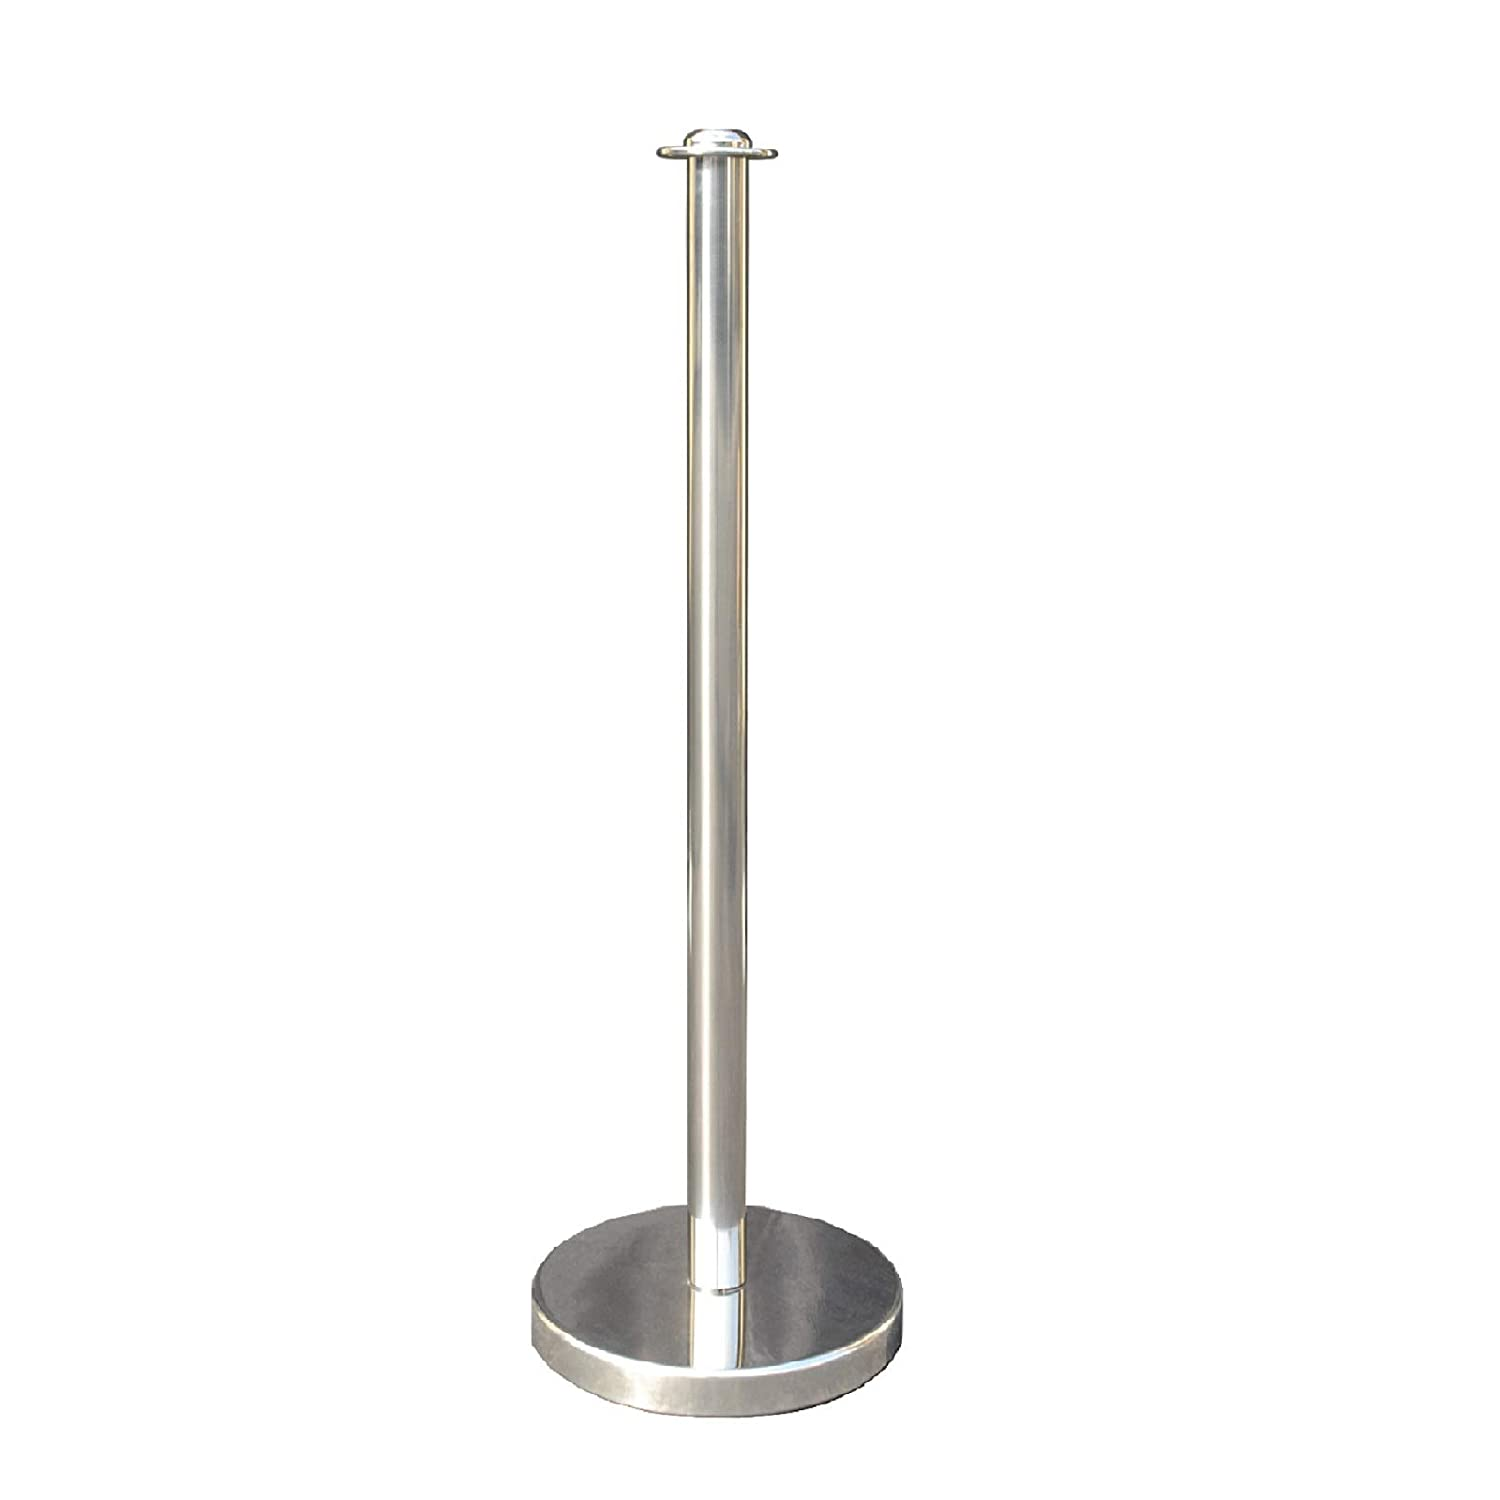 Mirror Taper Top Rope Stanchion in 3 pcs Set 72 Hemp Braided VIP Crowd Control